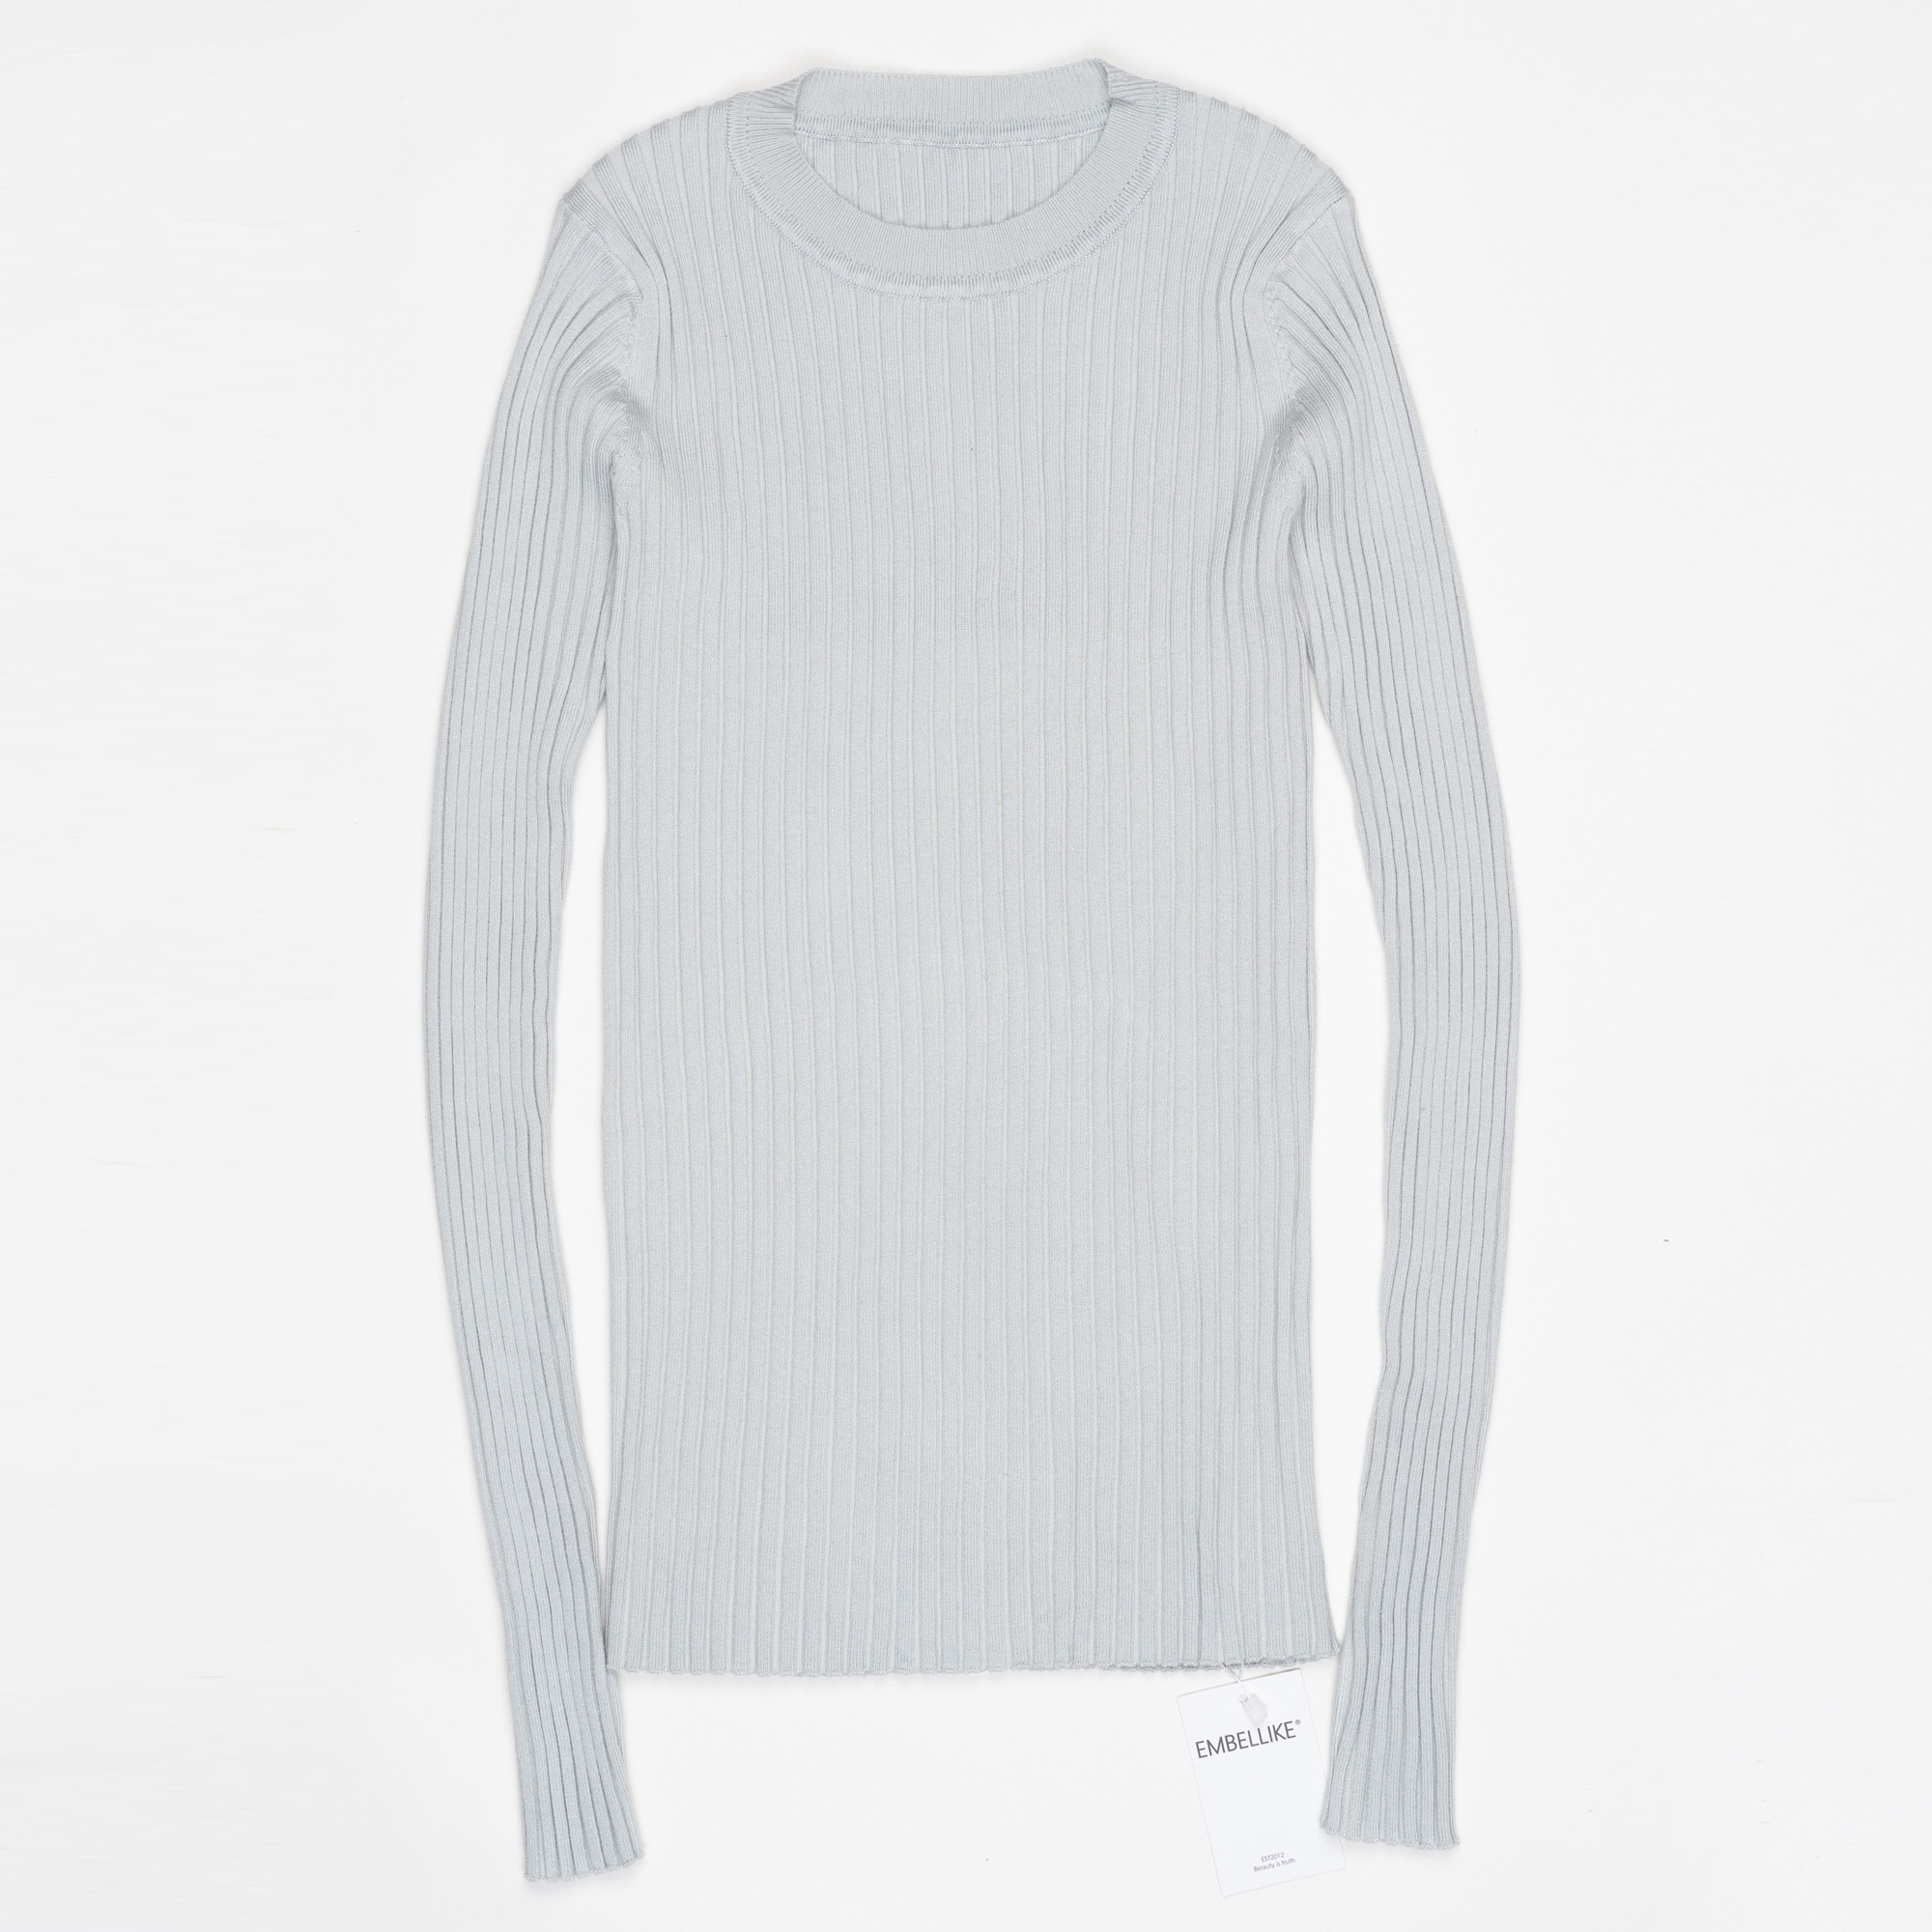 Women Sweater Pullover Basic Ribbed Sweaters Cotton Tops Knitted Solid Crew Neck With Thumb Hole 17